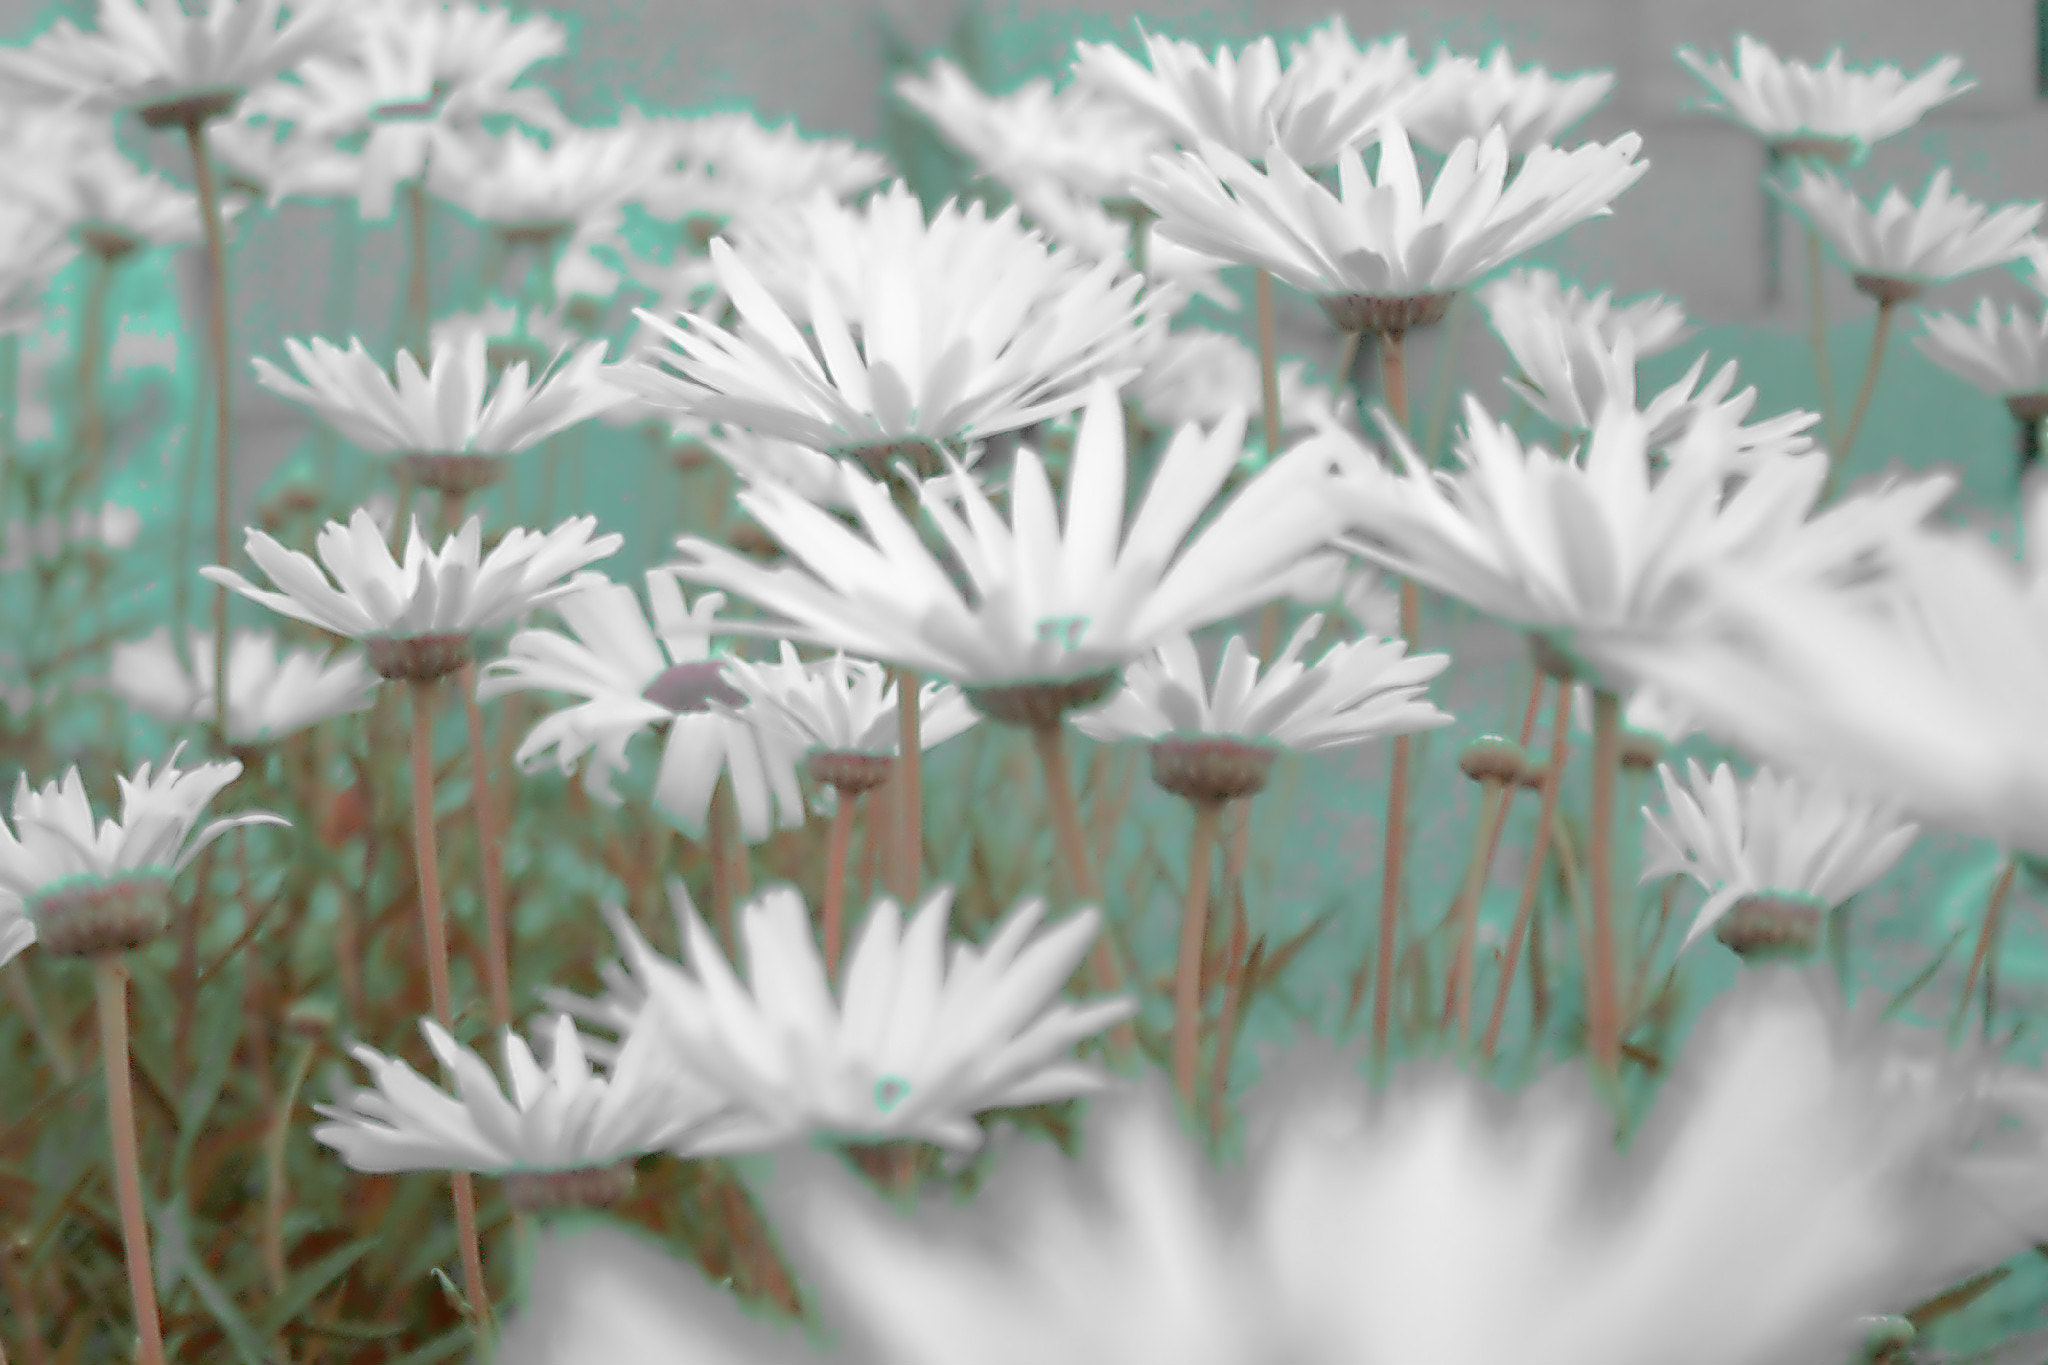 Photograph daisy by Rossella Sferlazzo on 500px